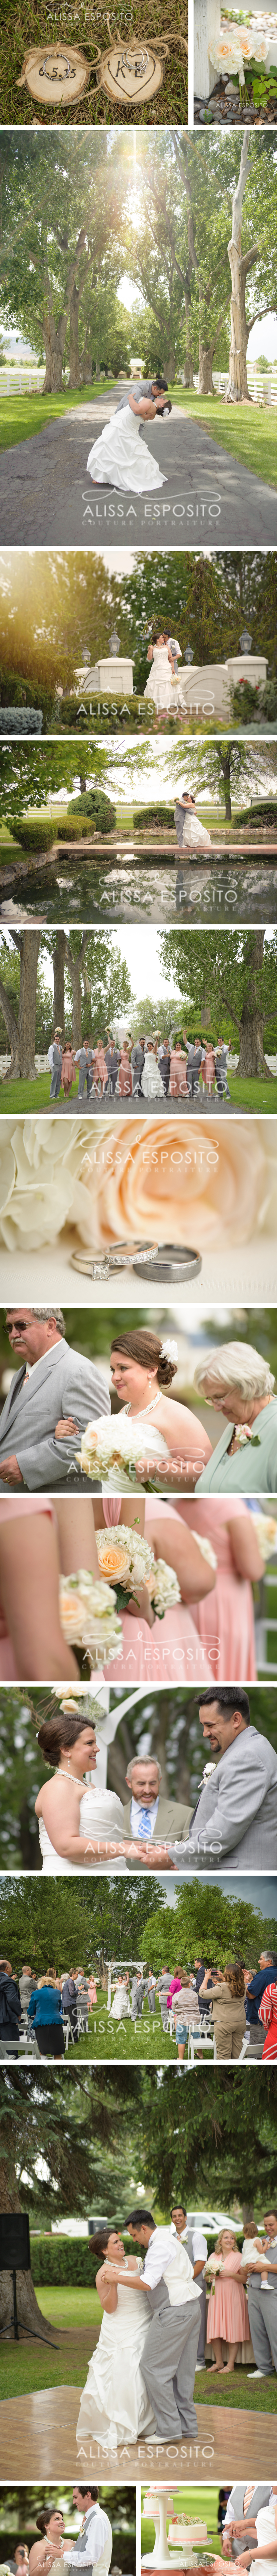 Alissa Esposito Photography Wedding